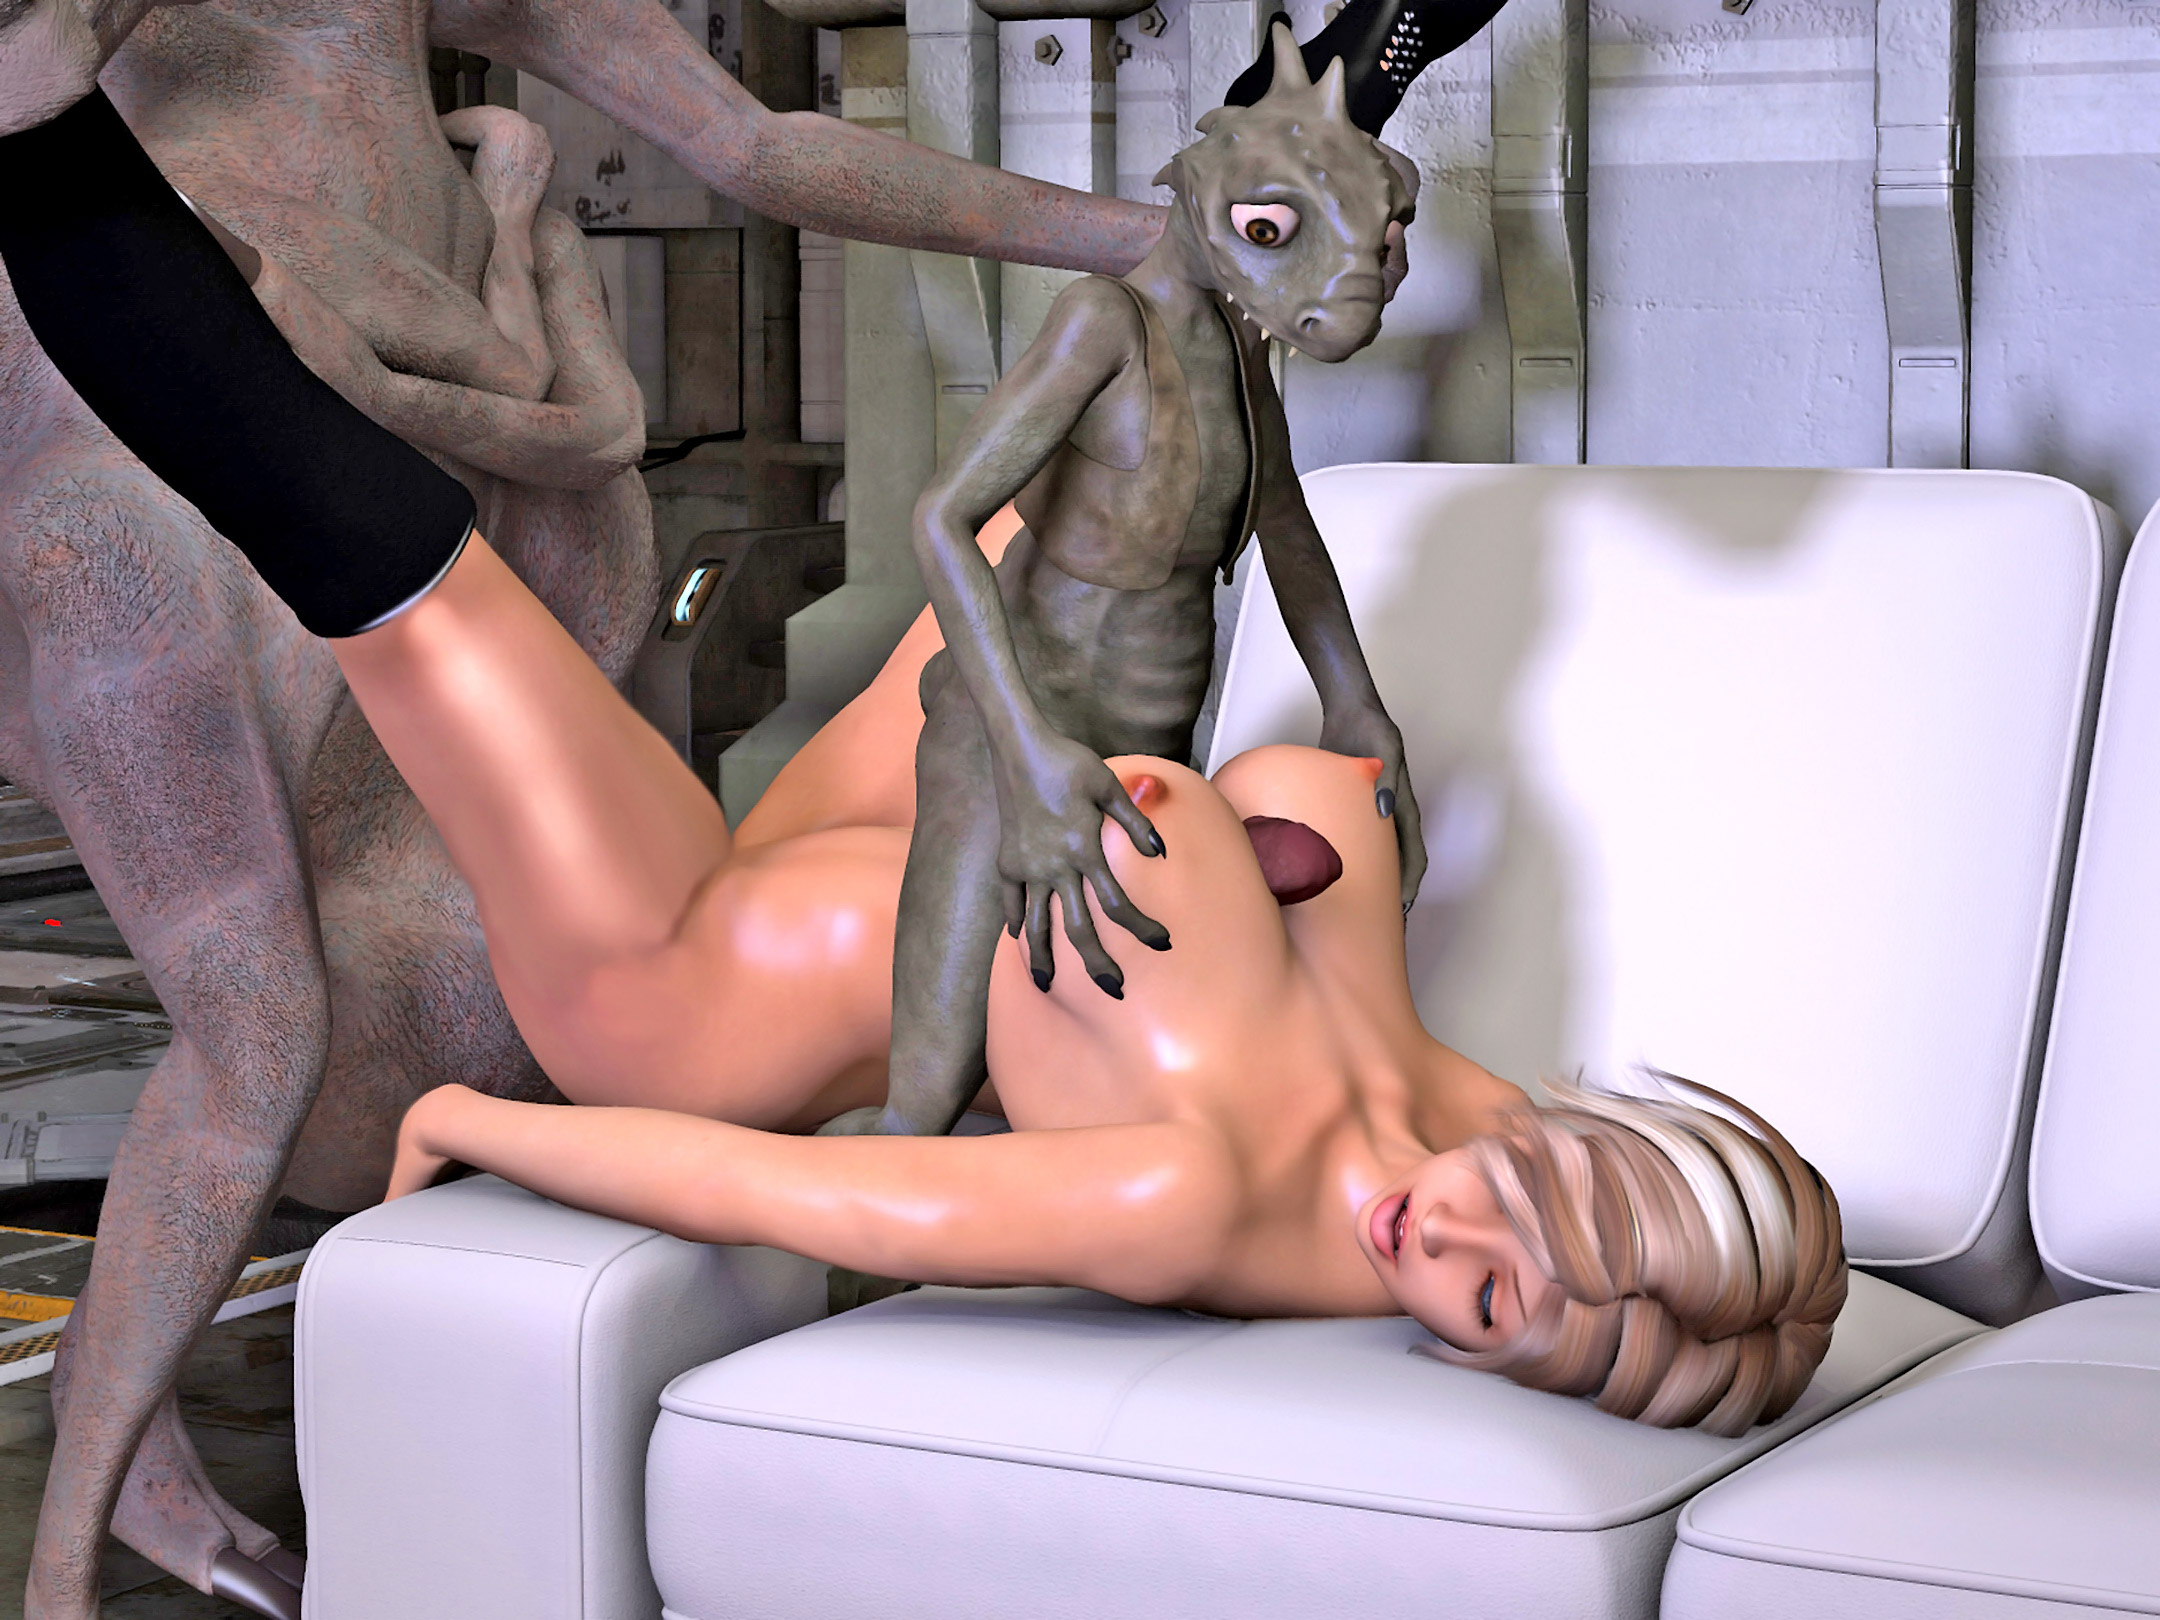 Cartoon monster alien goeast sex video download xxx videos